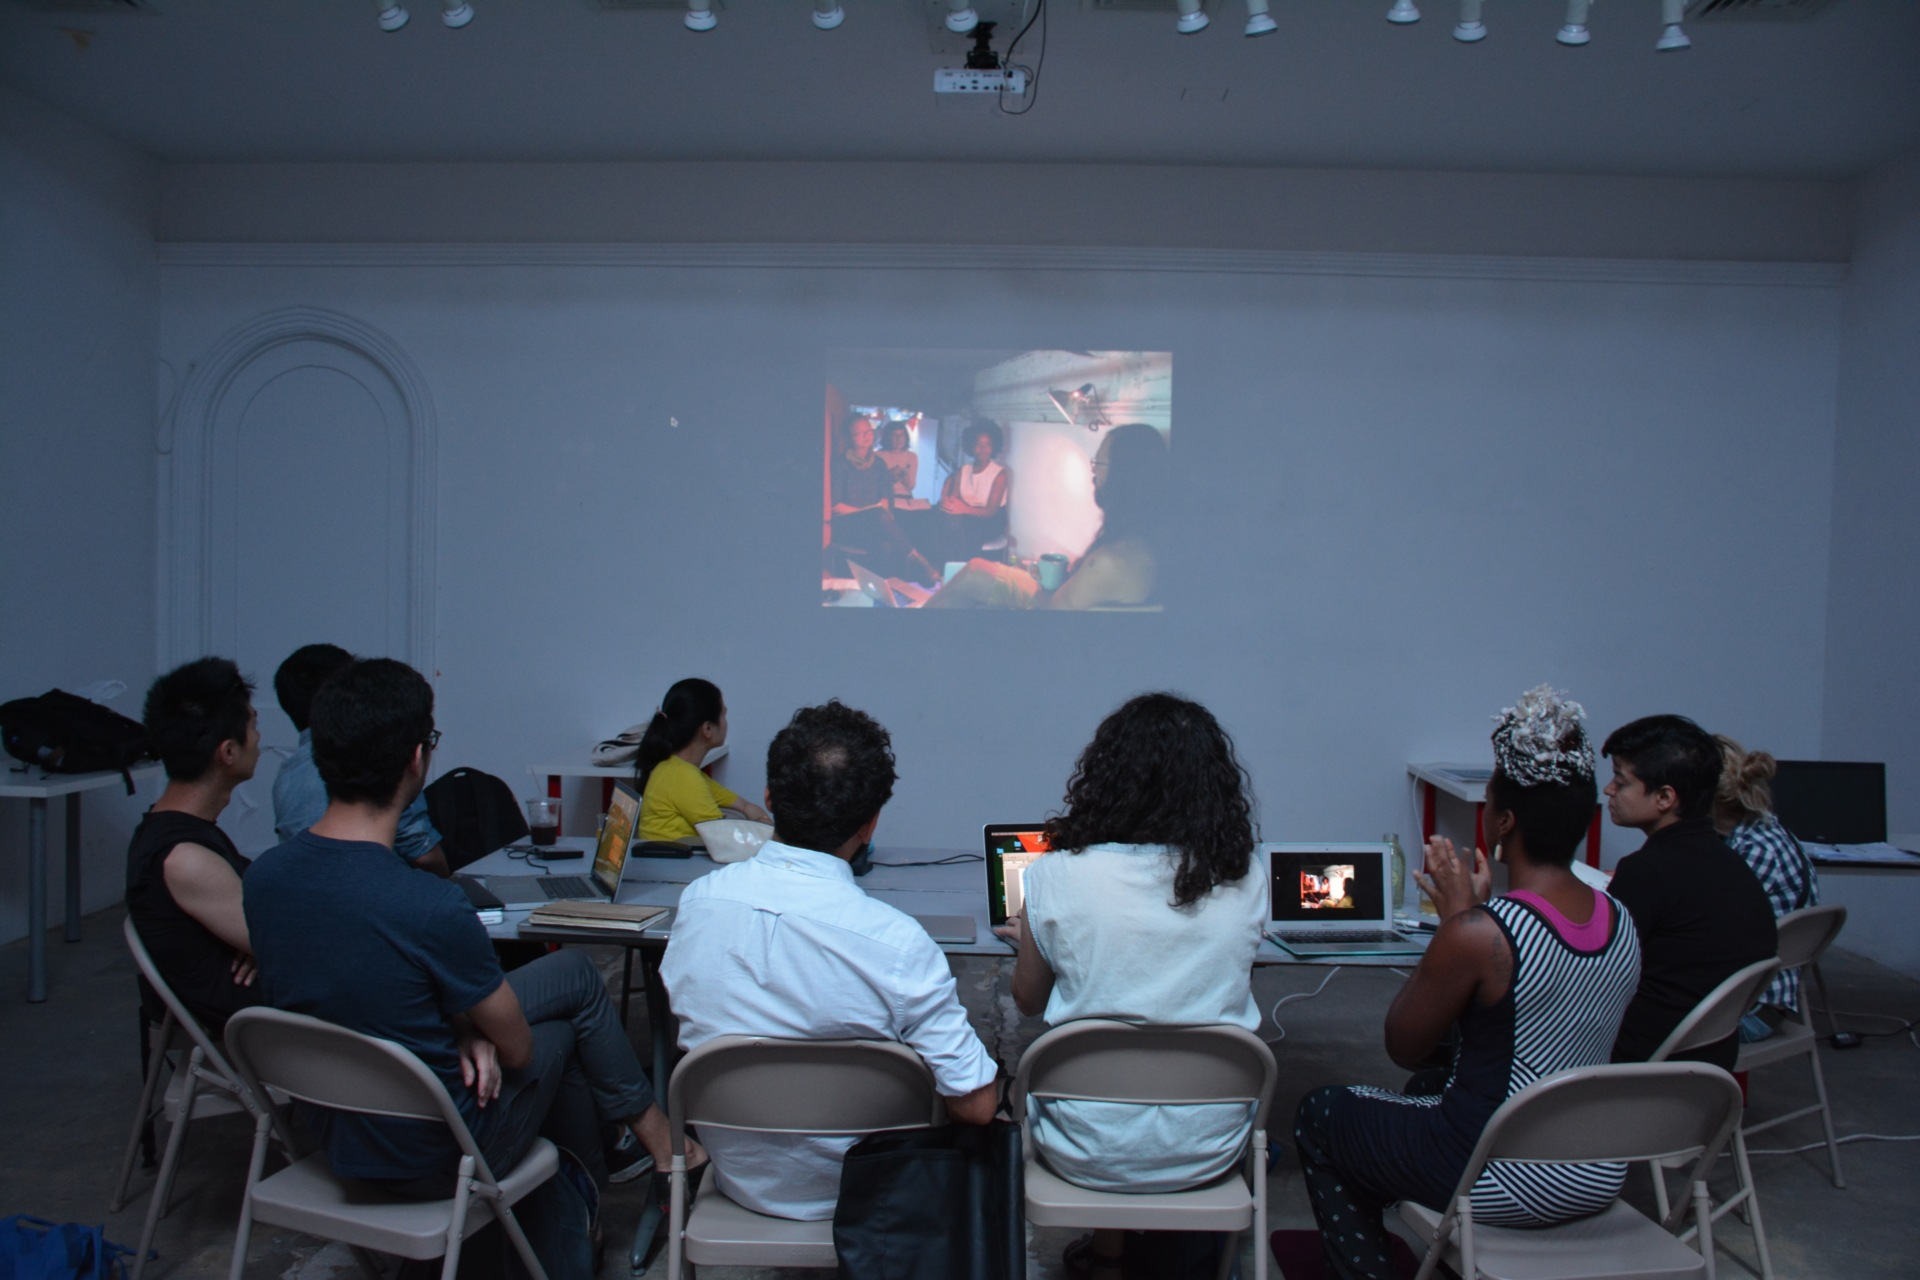 August 2016 Artist Presentations at RU Space with RU new residents. (from left to right: Kai-chun Chiang, Sean Wang, Jorge A. Rodriguez Mazzini, Shurui Li, Özgür Demirci, Nataša Prljević, Anaïs Duplan, Zorica Zafirovska, Nina Komel)